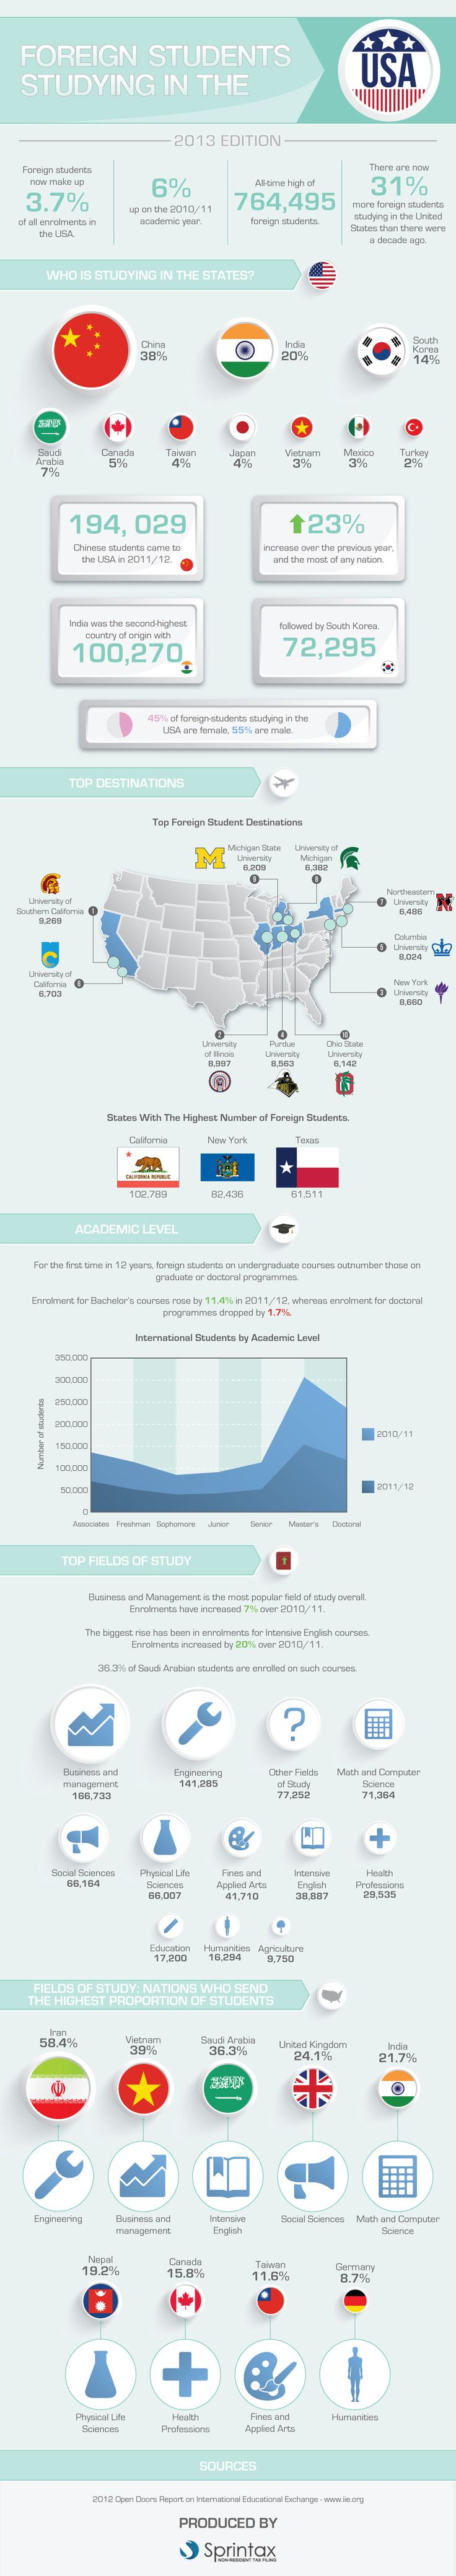 Do you want to learn a couple of interesting facts about the international students in the US? Check our infographic!